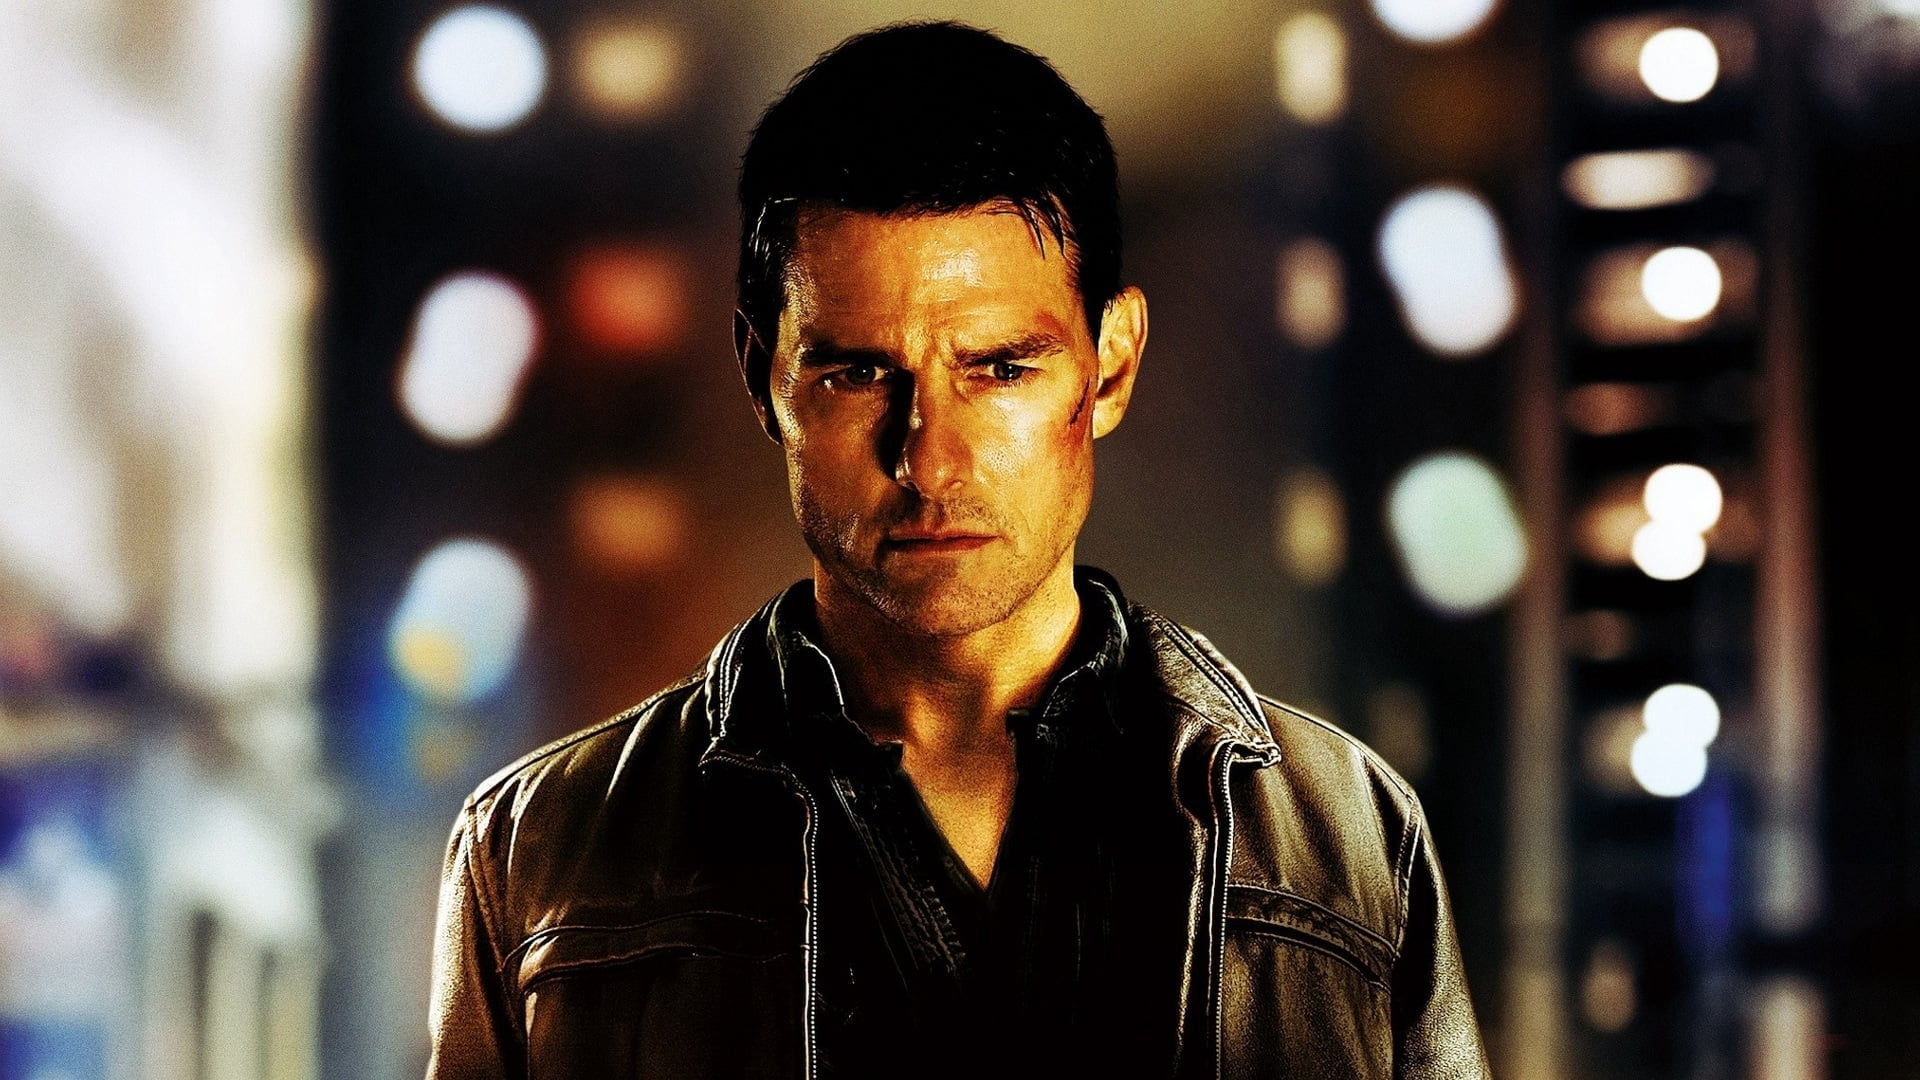 Jack Reacher Movie Streaming Online Watch on Amazon, Google Play, Jio Cinema, Youtube, iTunes